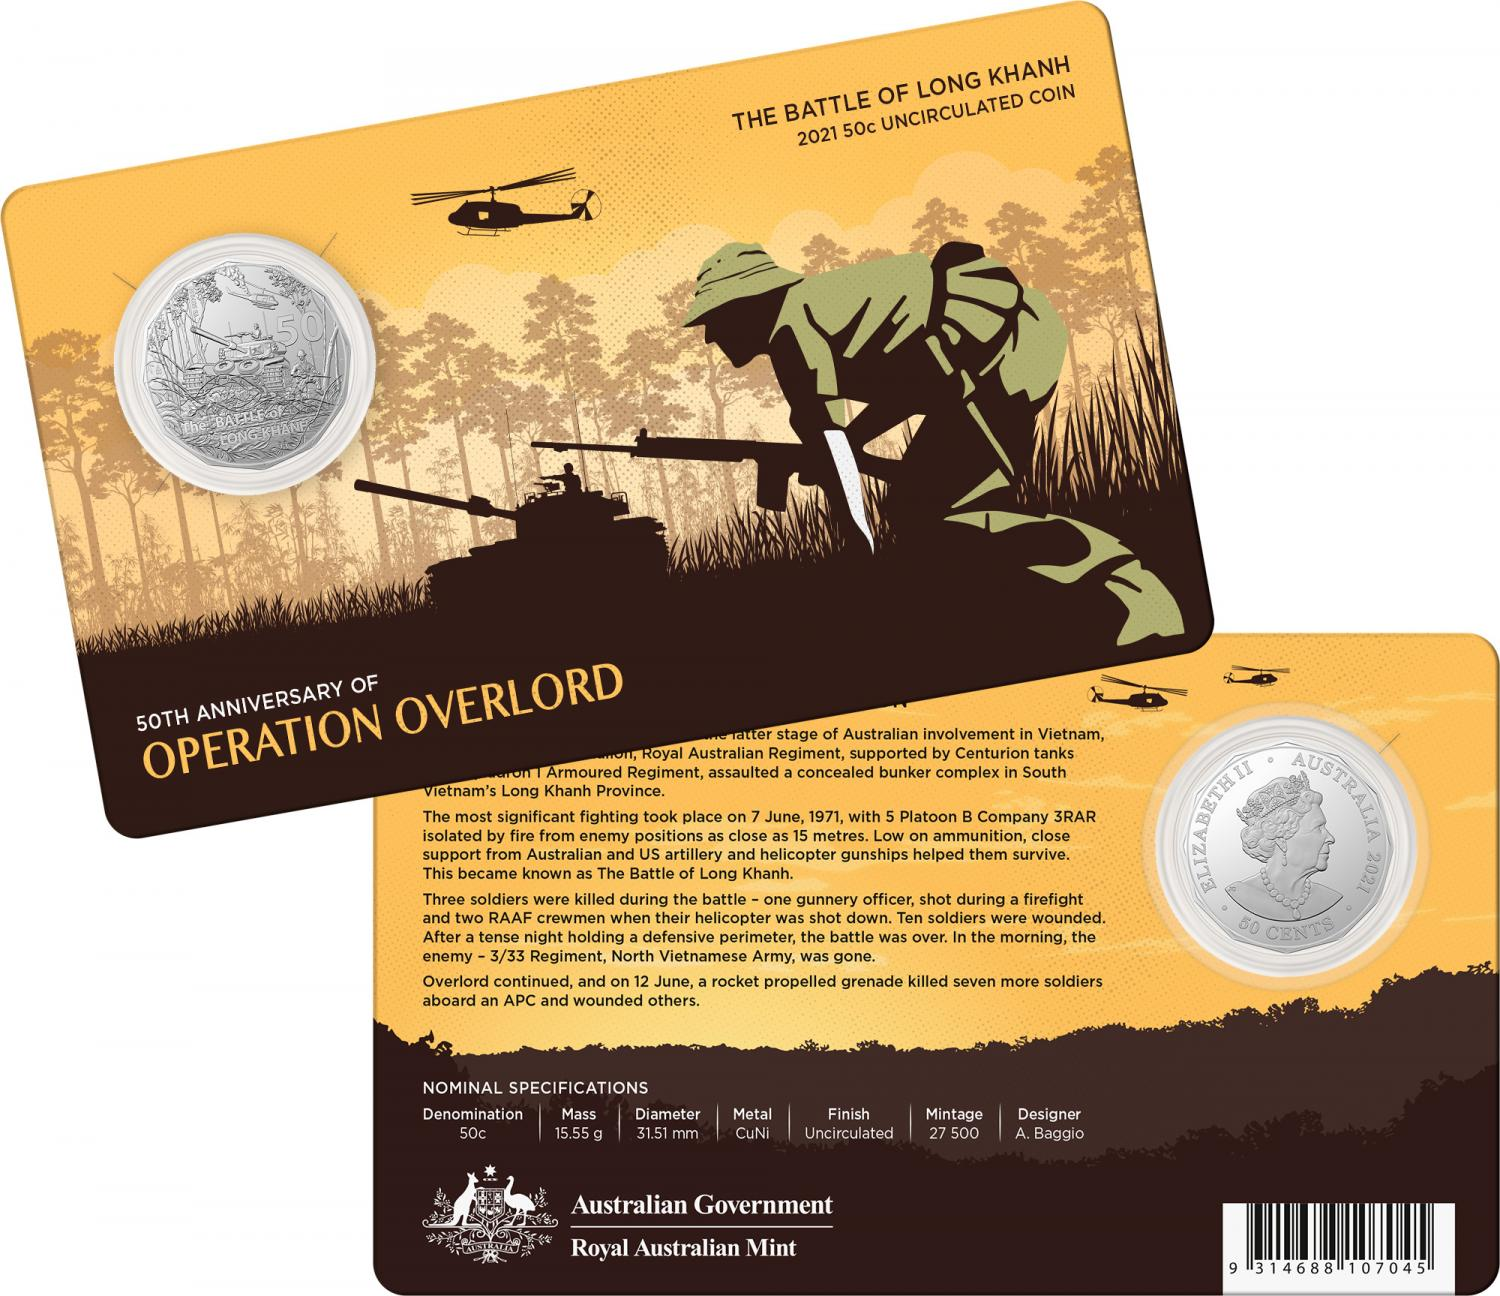 Thumbnail for 2021 .50¢ 50th Anniversary of the Battle of Long Khanh CuNi Coin on Card